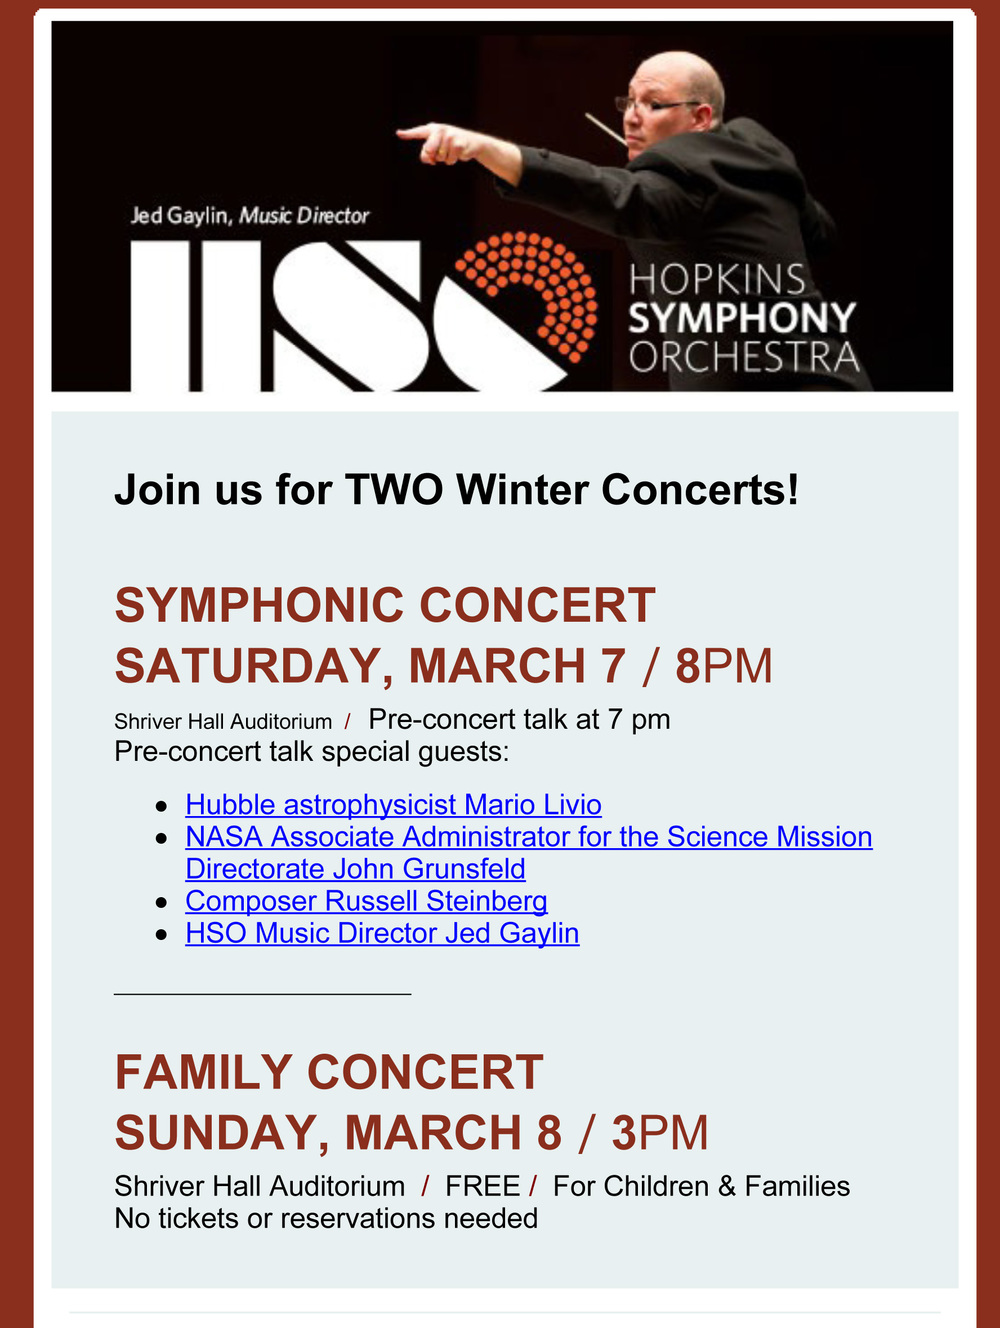 Hopkins Symphony Poster for Cosmic Dust Concert